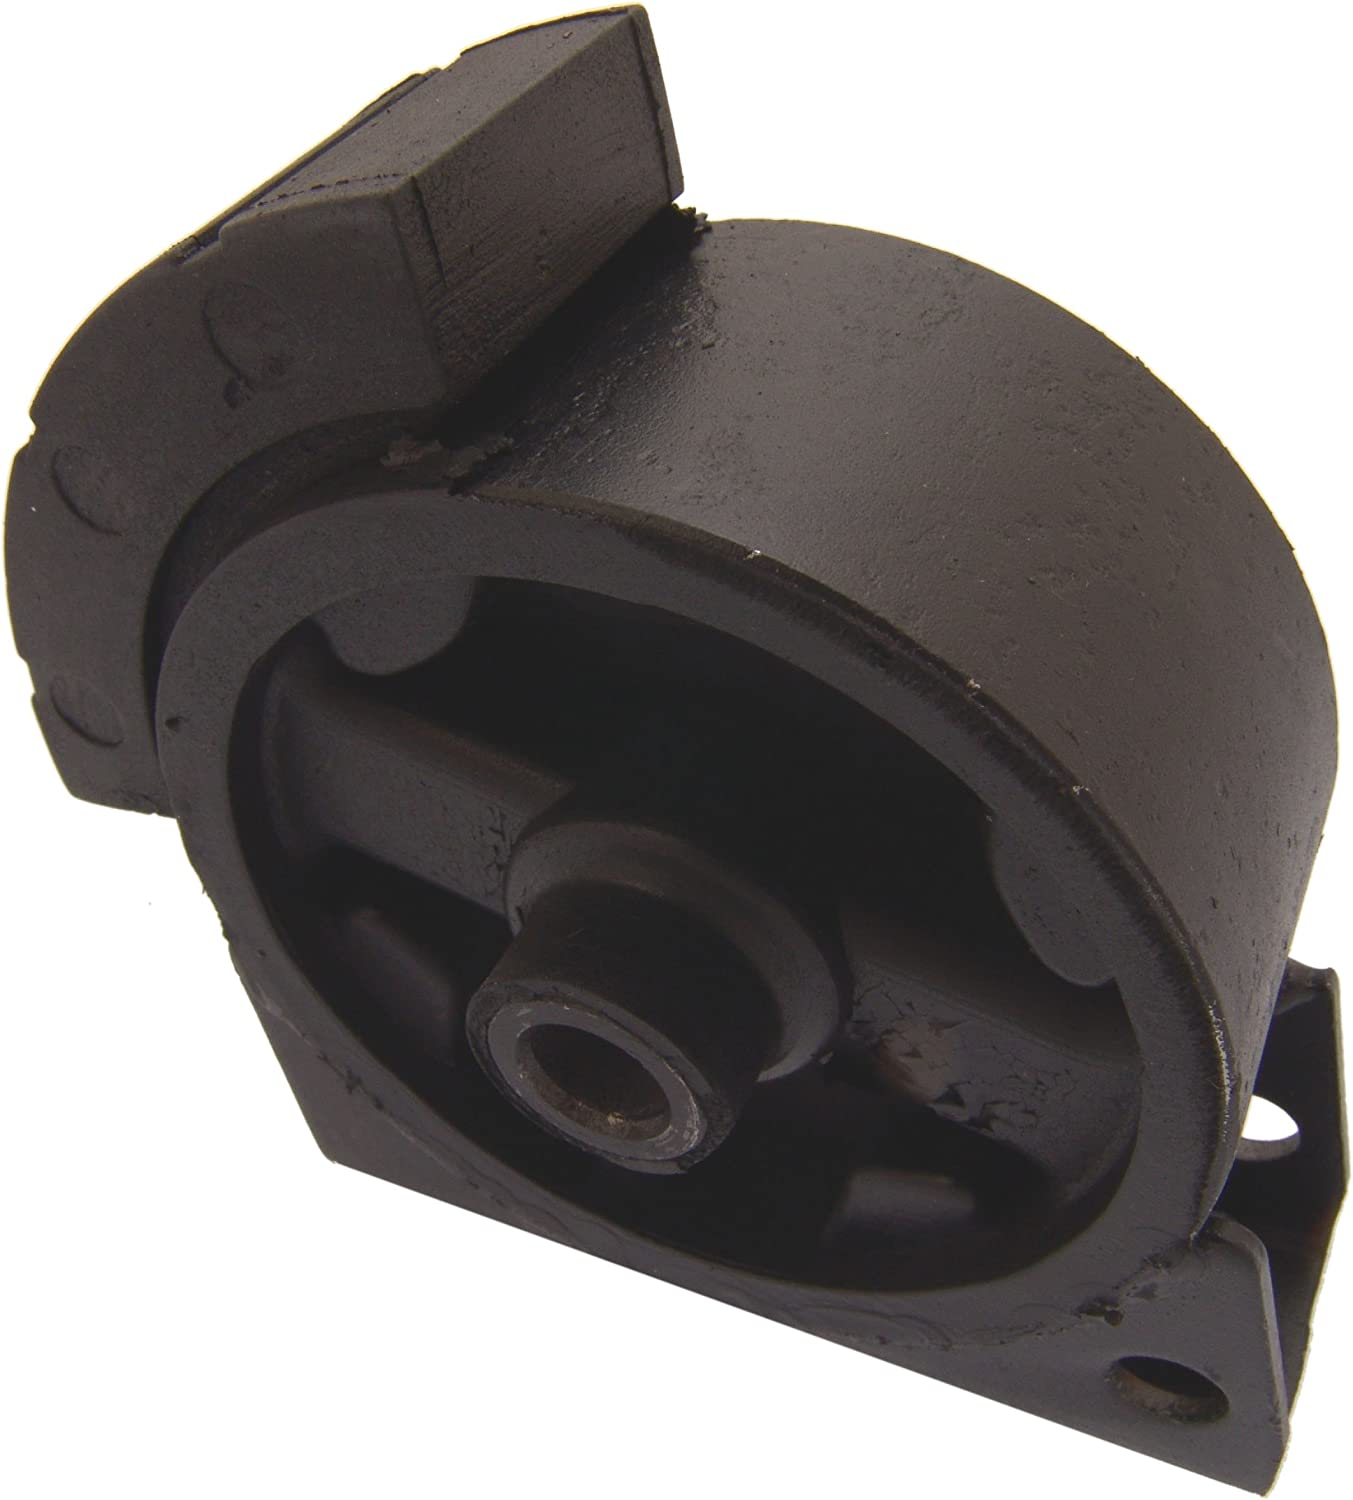 1236111160 - Front Engine Febest Mount Inventory cleanup selling safety sale For Toyota